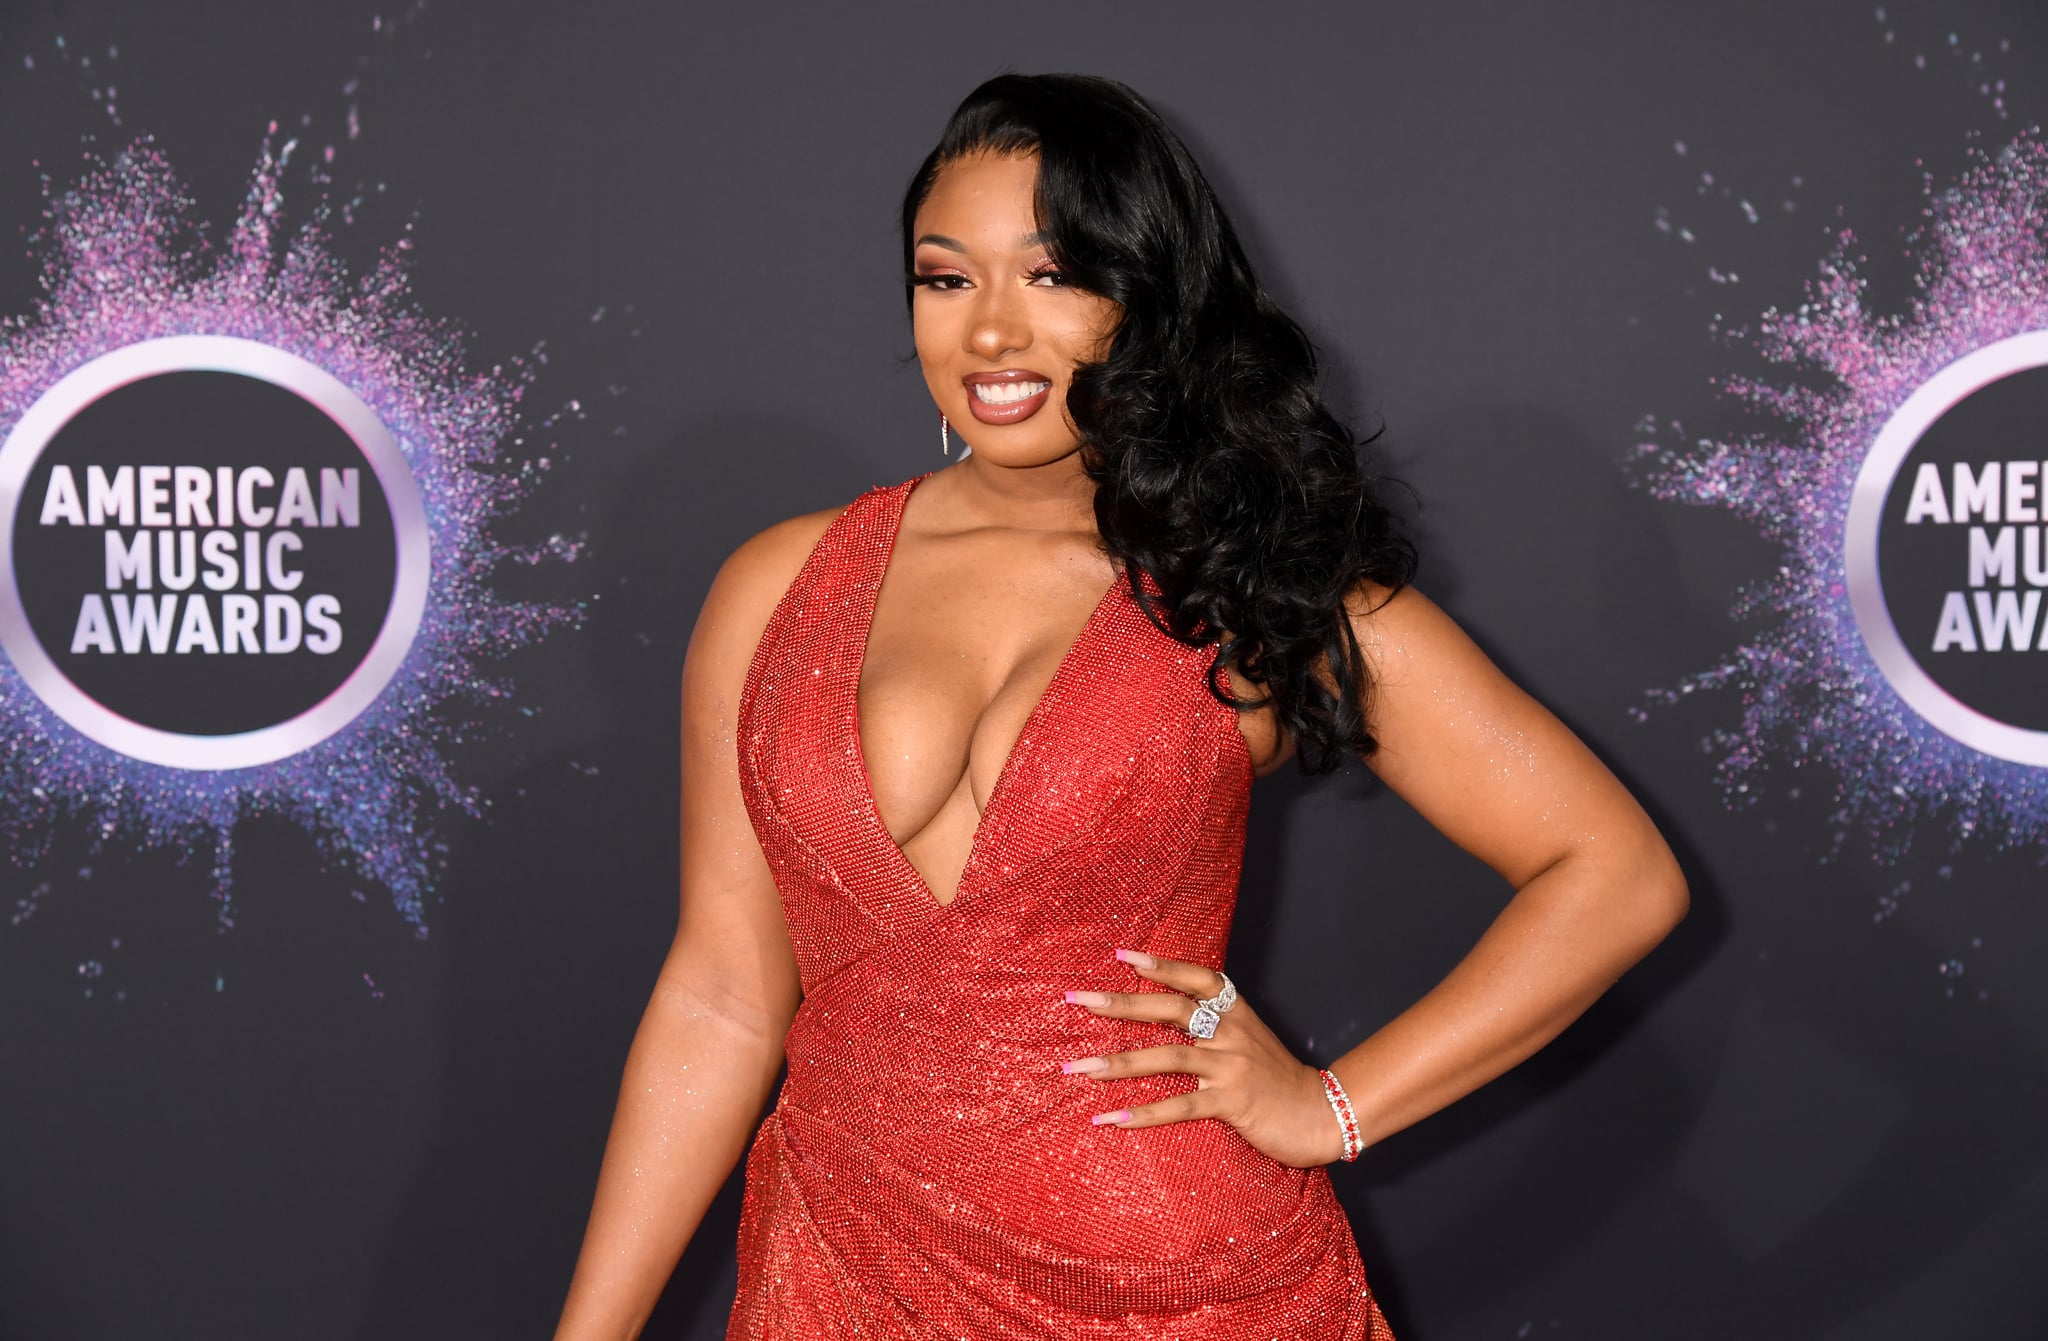 LOS ANGELES, CALIFORNIA - NOVEMBER 24: Megan Thee Stallion attends the 2019 American Music Awards at Microsoft Theatre on November 24, 2019 in Los Angeles, California. (Photo by Jeff Kravitz/FilmMagic for dcp)